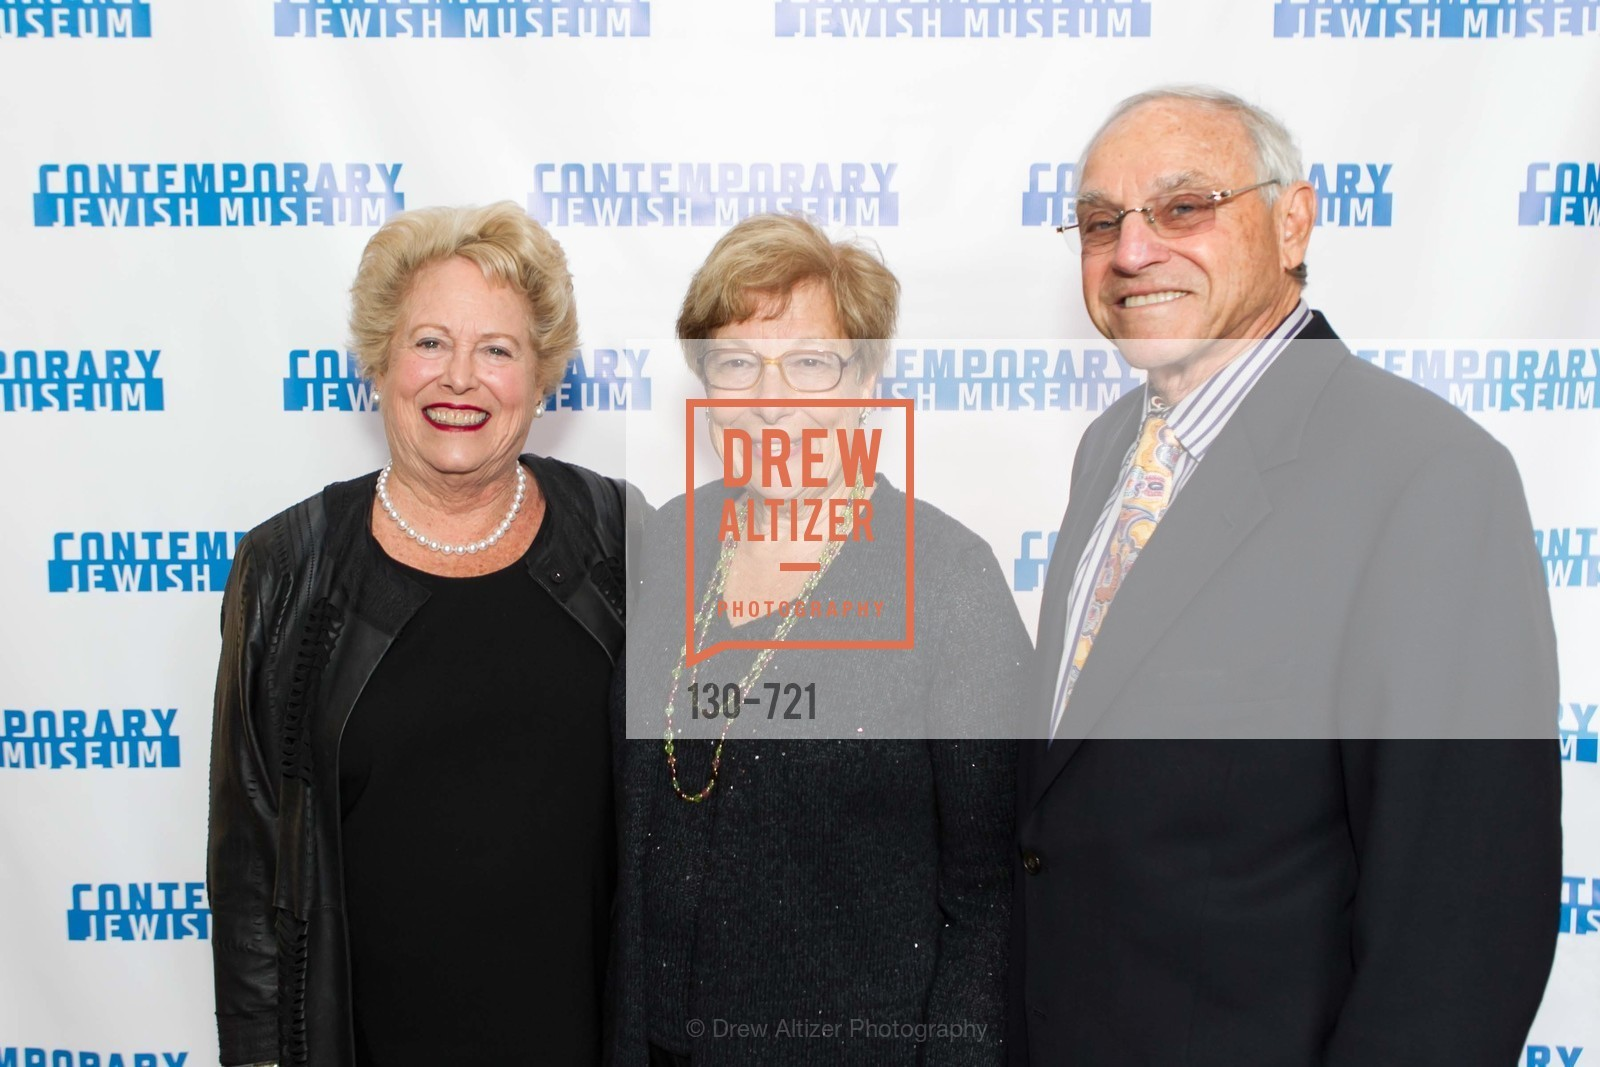 Judy Silverman, Esther Sherman, Robert Silverman, The 2015 Dorothy Saxe Invitational Celebration at the JEWISH MUSEUM, US, May 13th, 2015,Drew Altizer, Drew Altizer Photography, full-service agency, private events, San Francisco photographer, photographer california